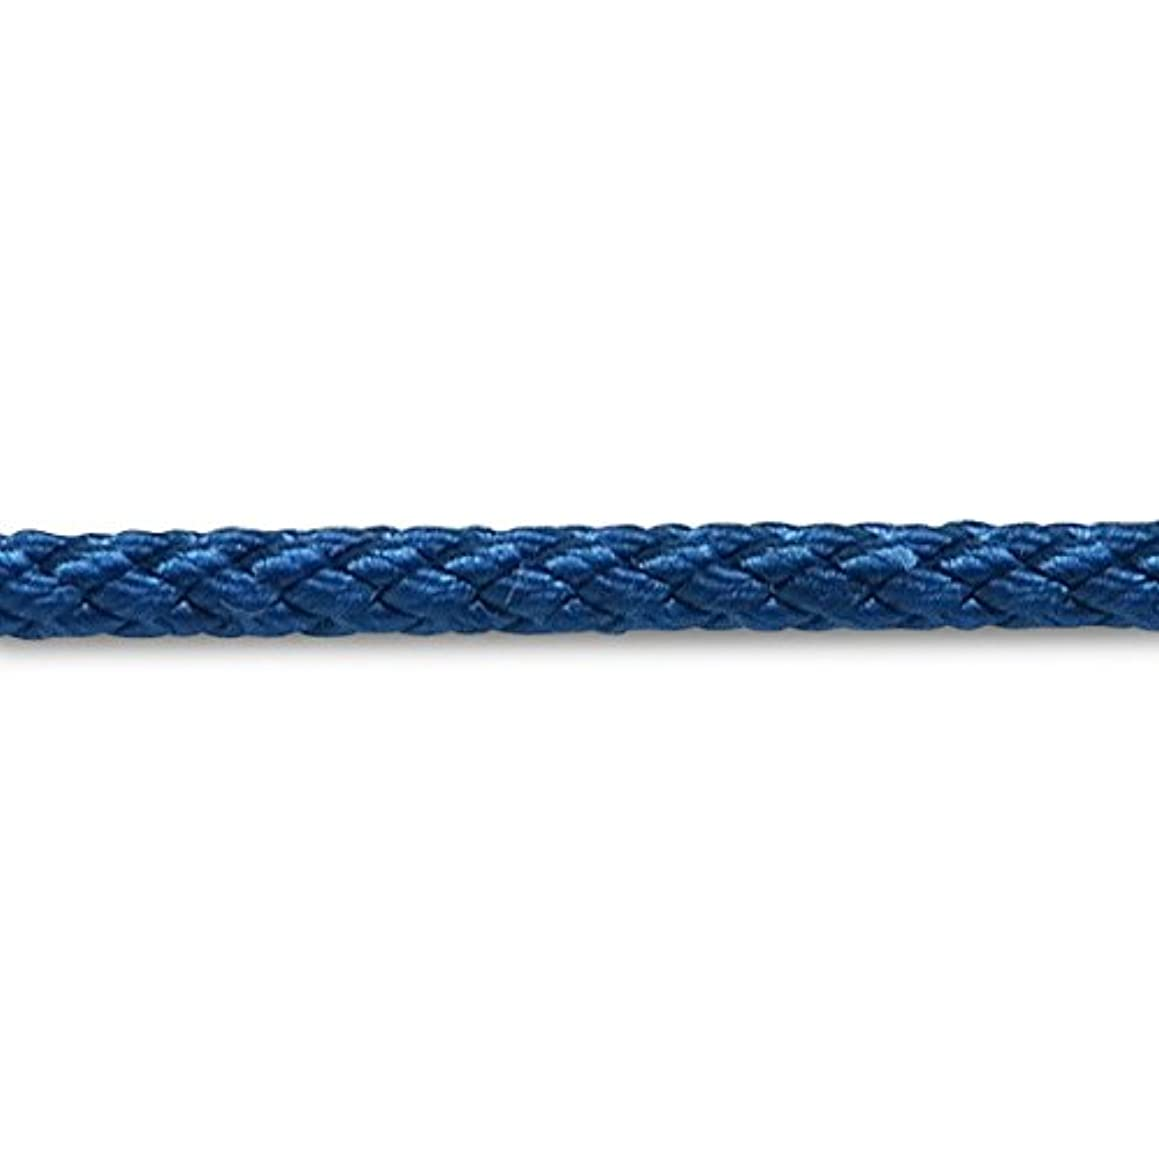 Expo CN092510M03-20 20 Yards of 1/8